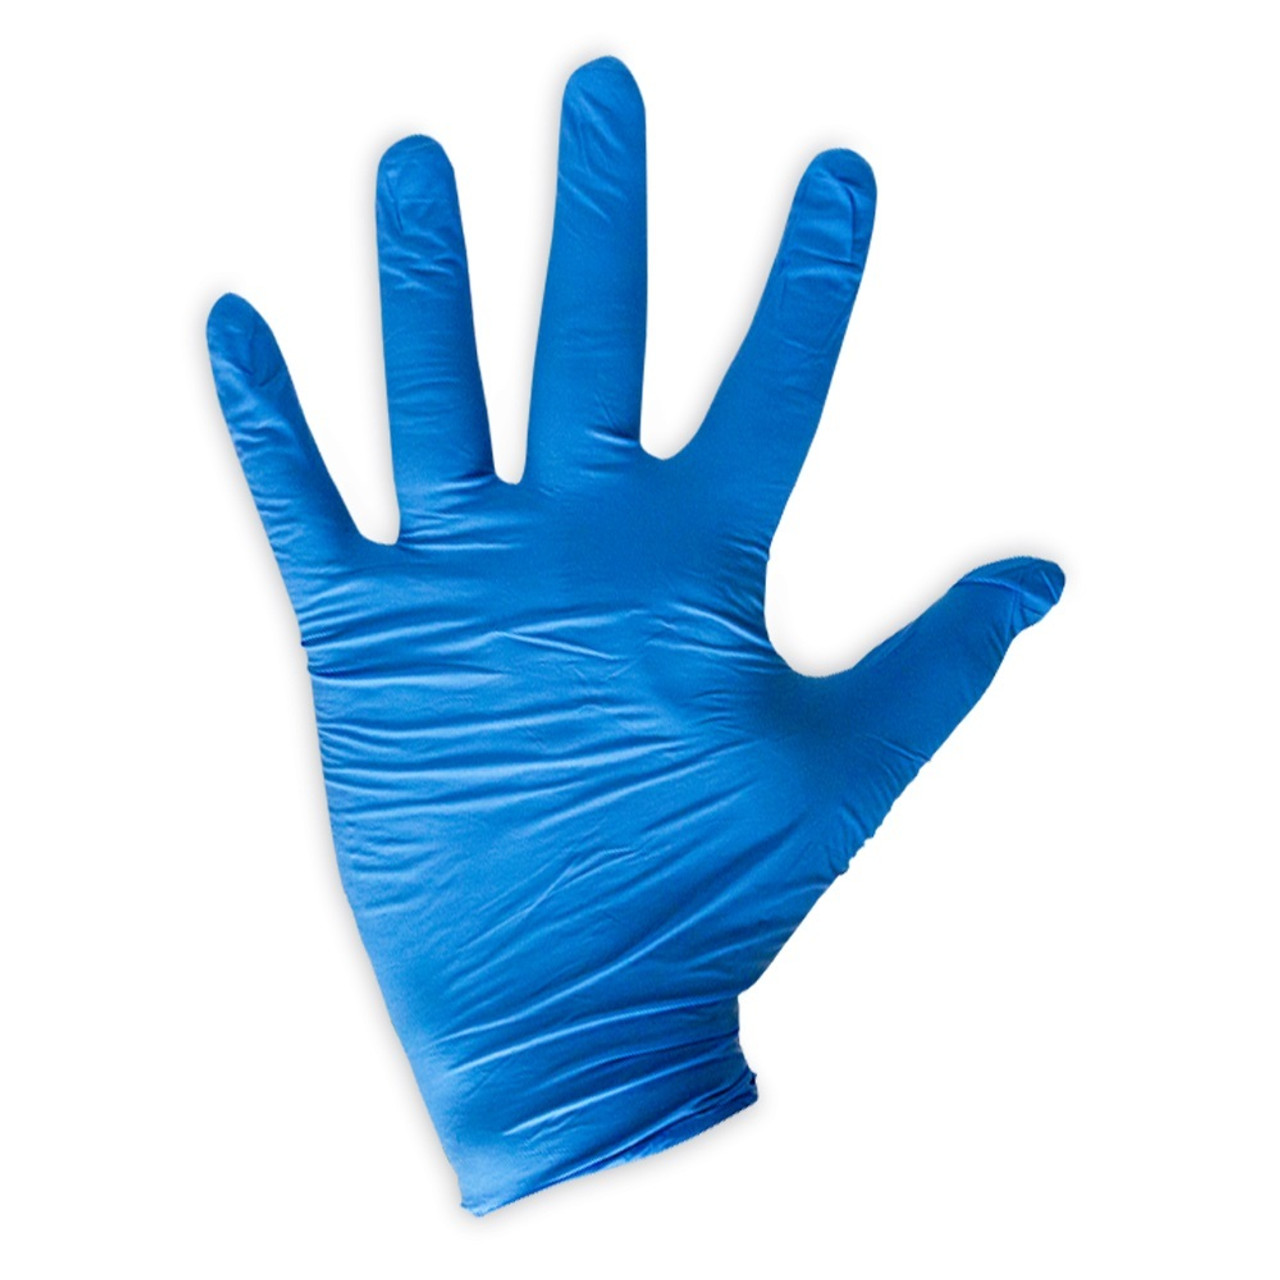 Disposable Cleaning Gloves